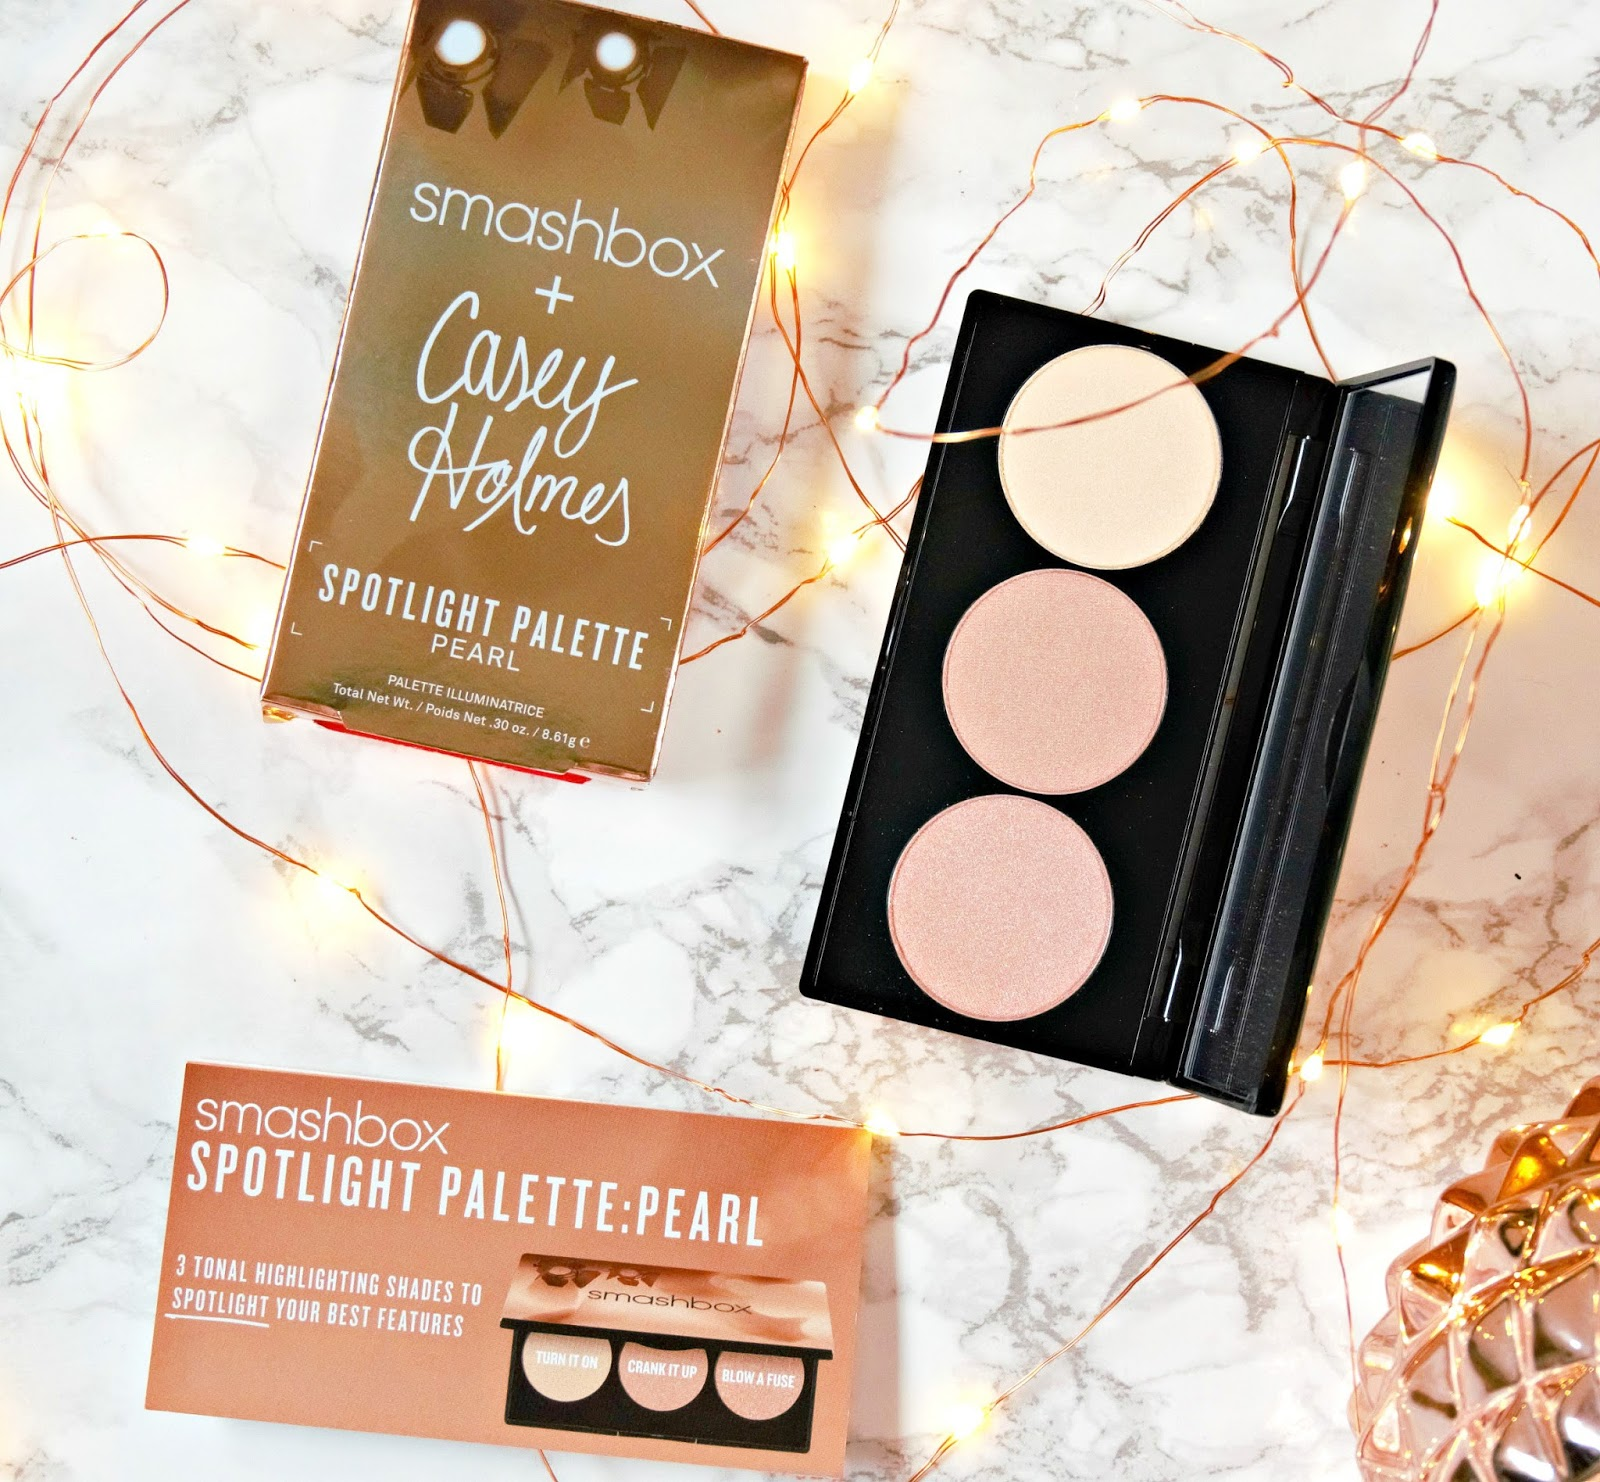 Smashbox x Casey Holmes Spotlight Palette Review